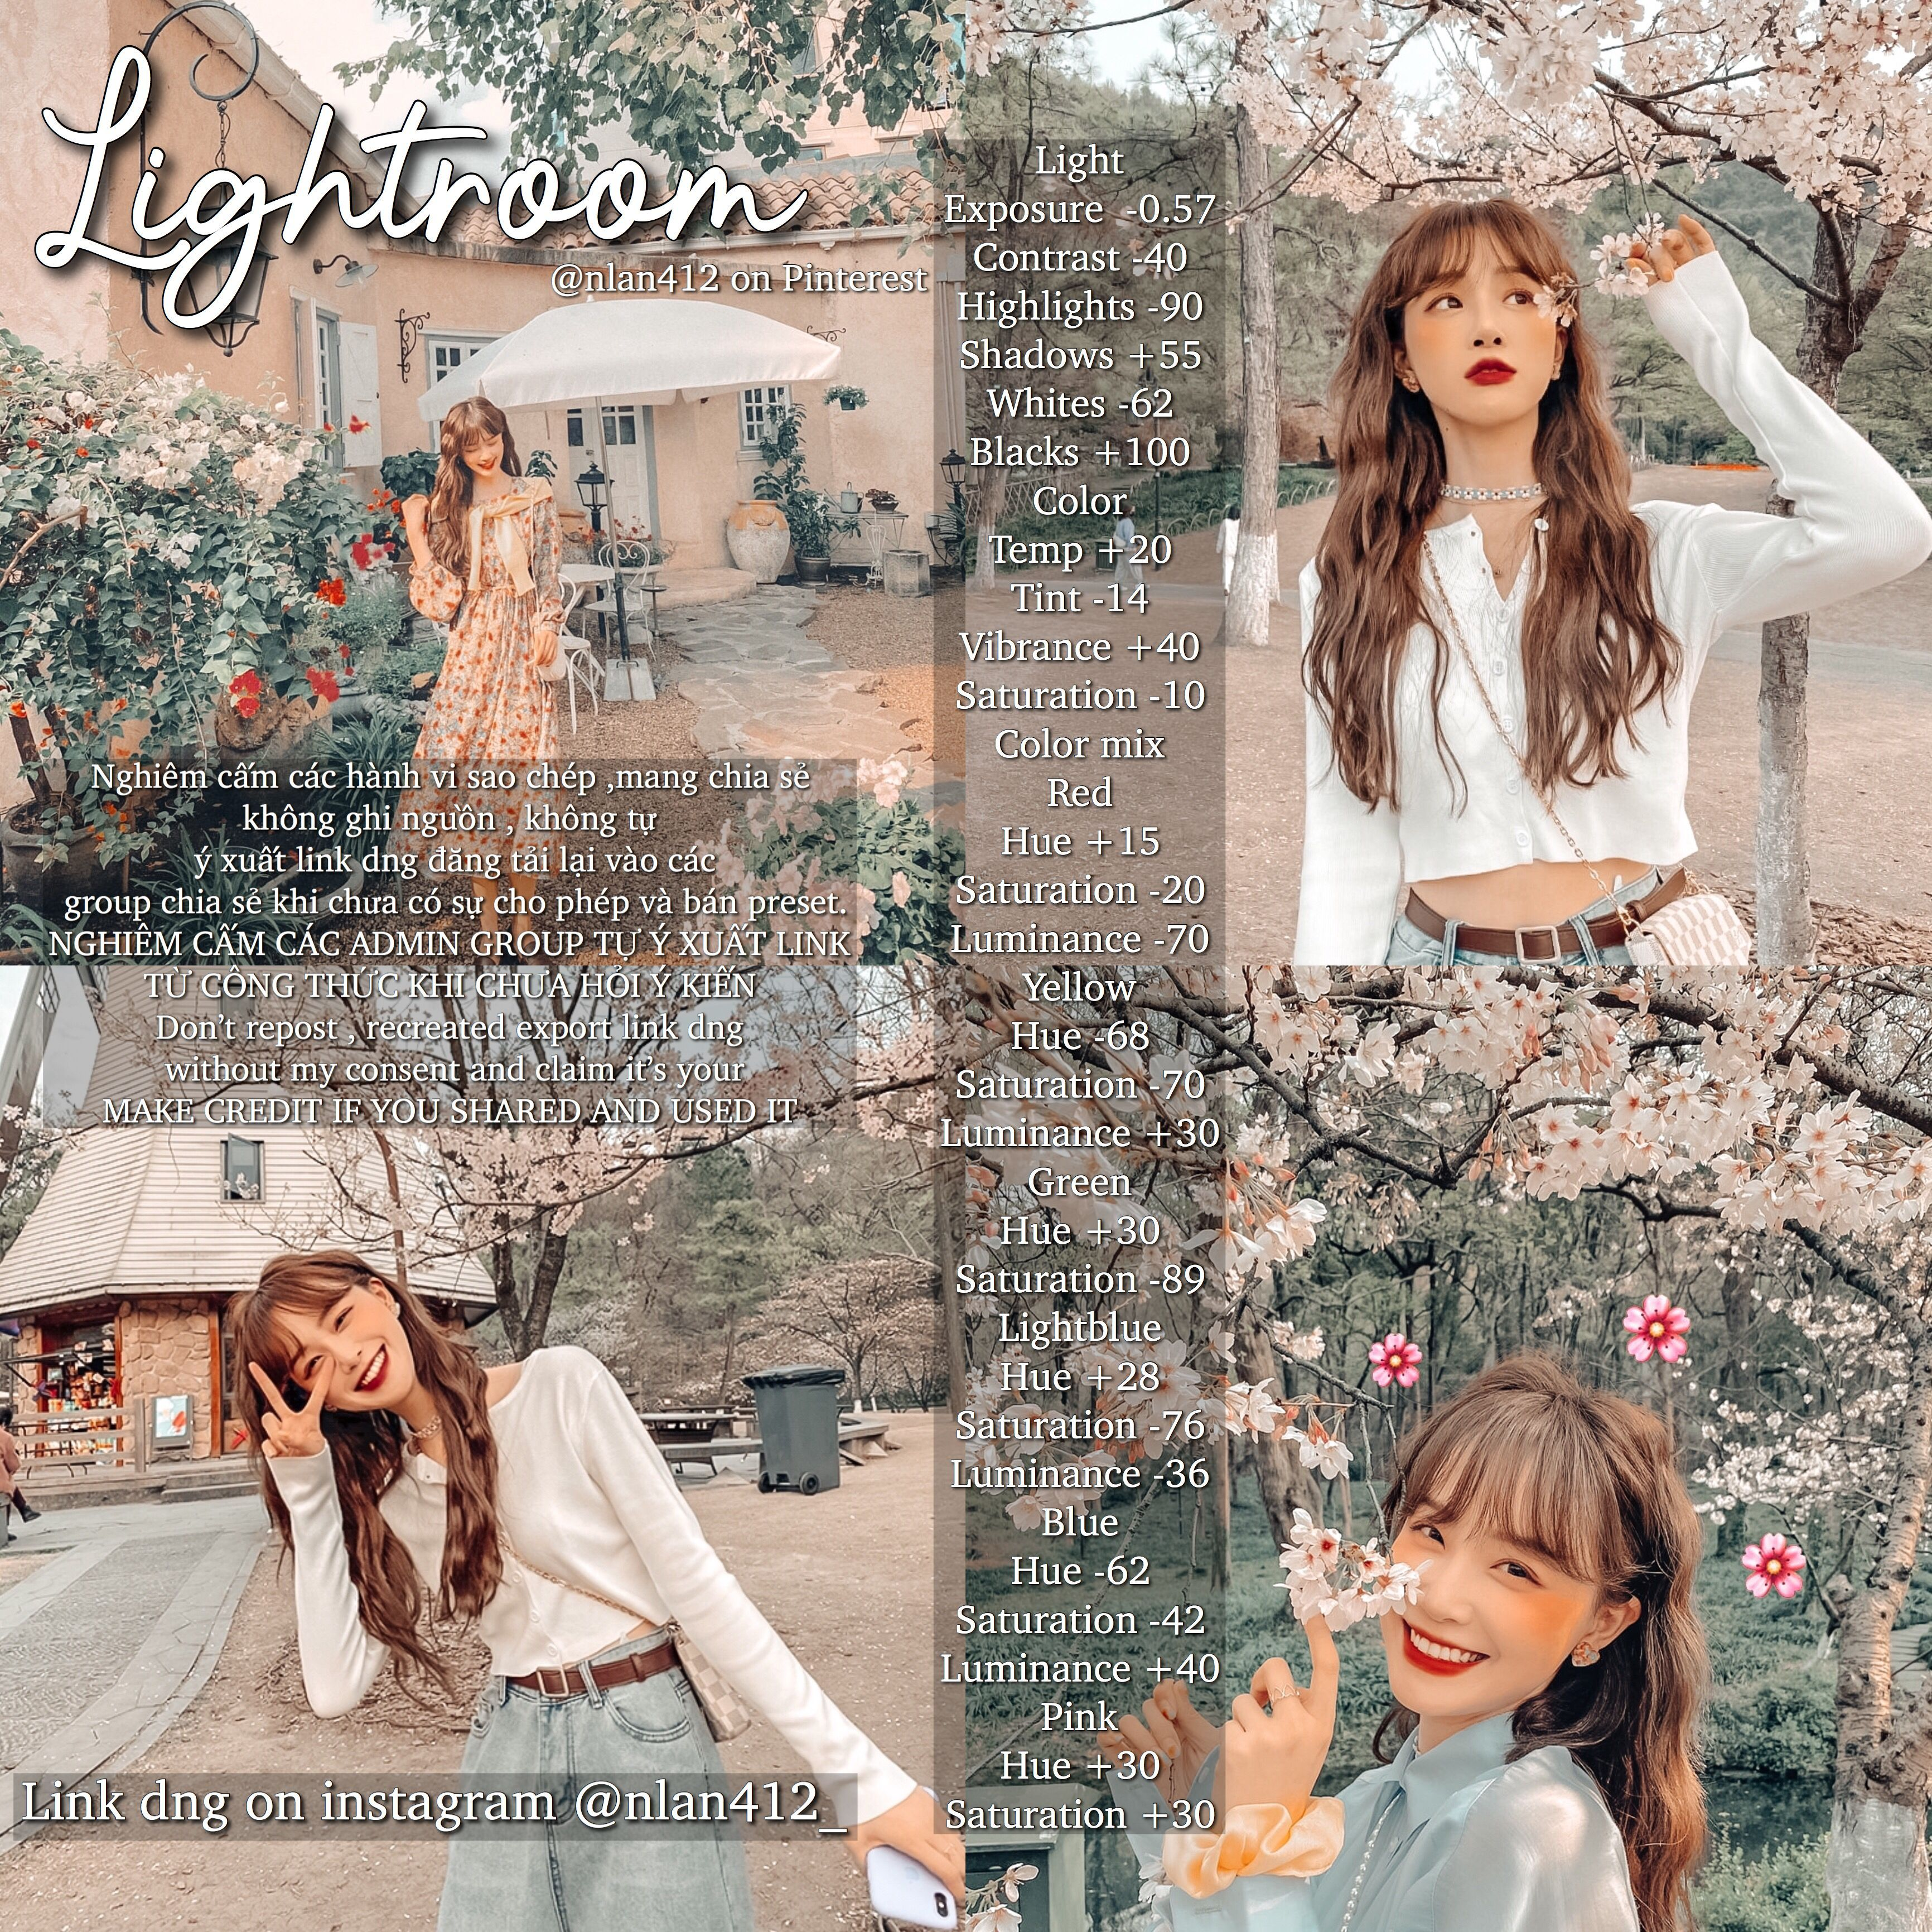 Animal Photography Lightroom Presets Aesthetic Lightroom Presets Aesthetic In 2020 Lightroom Tutorial Photo Editing Lightroom Presets Tutorial Lightroom Presets